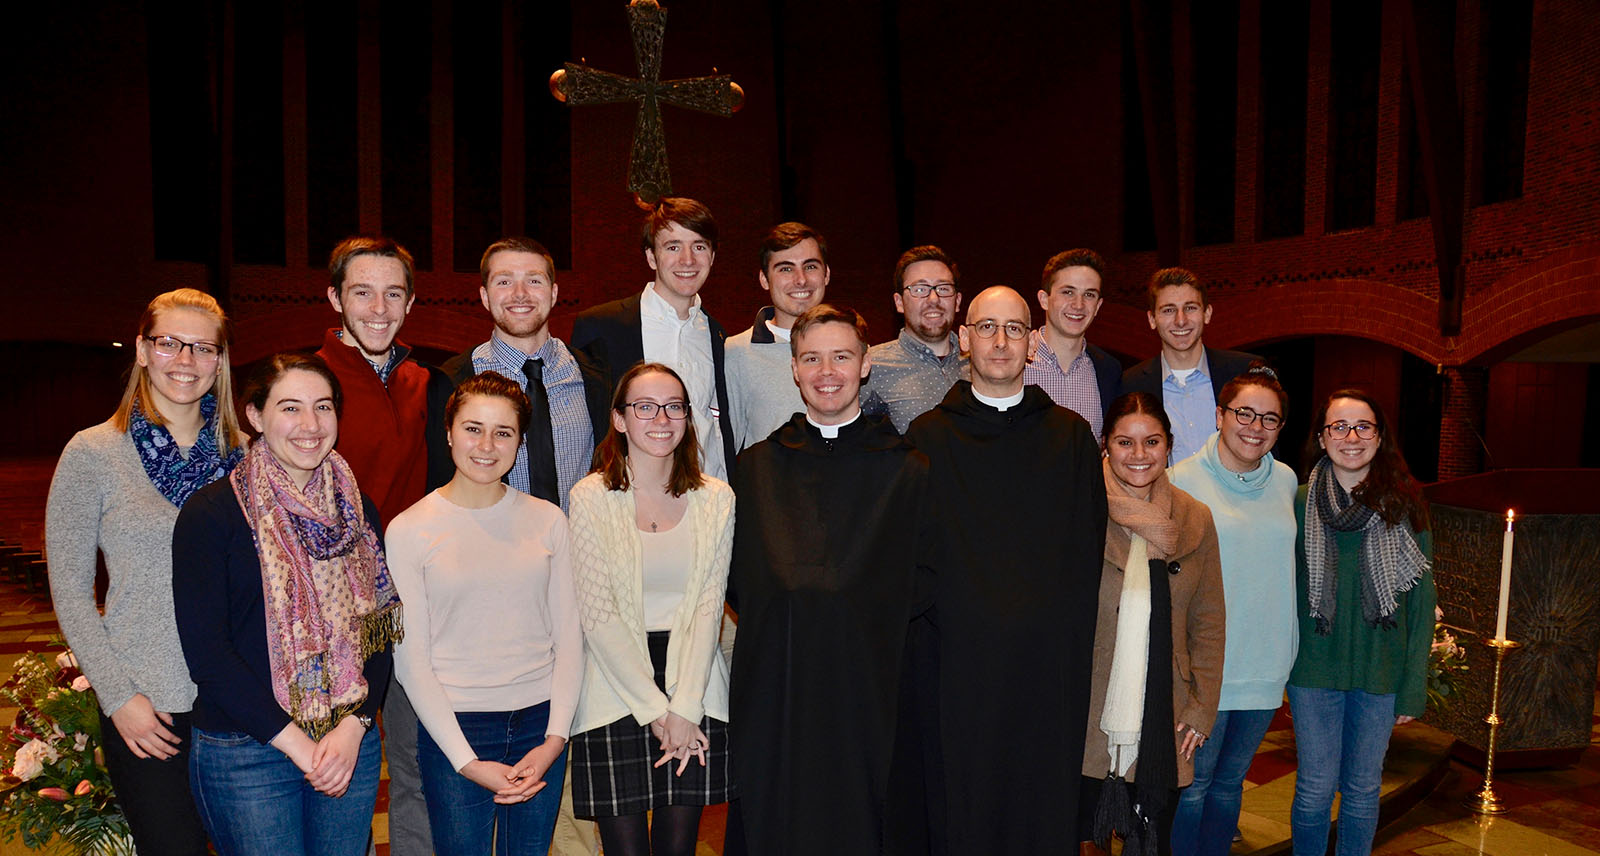 Brothers Titus and Dunstan with students from Saint Anselm College